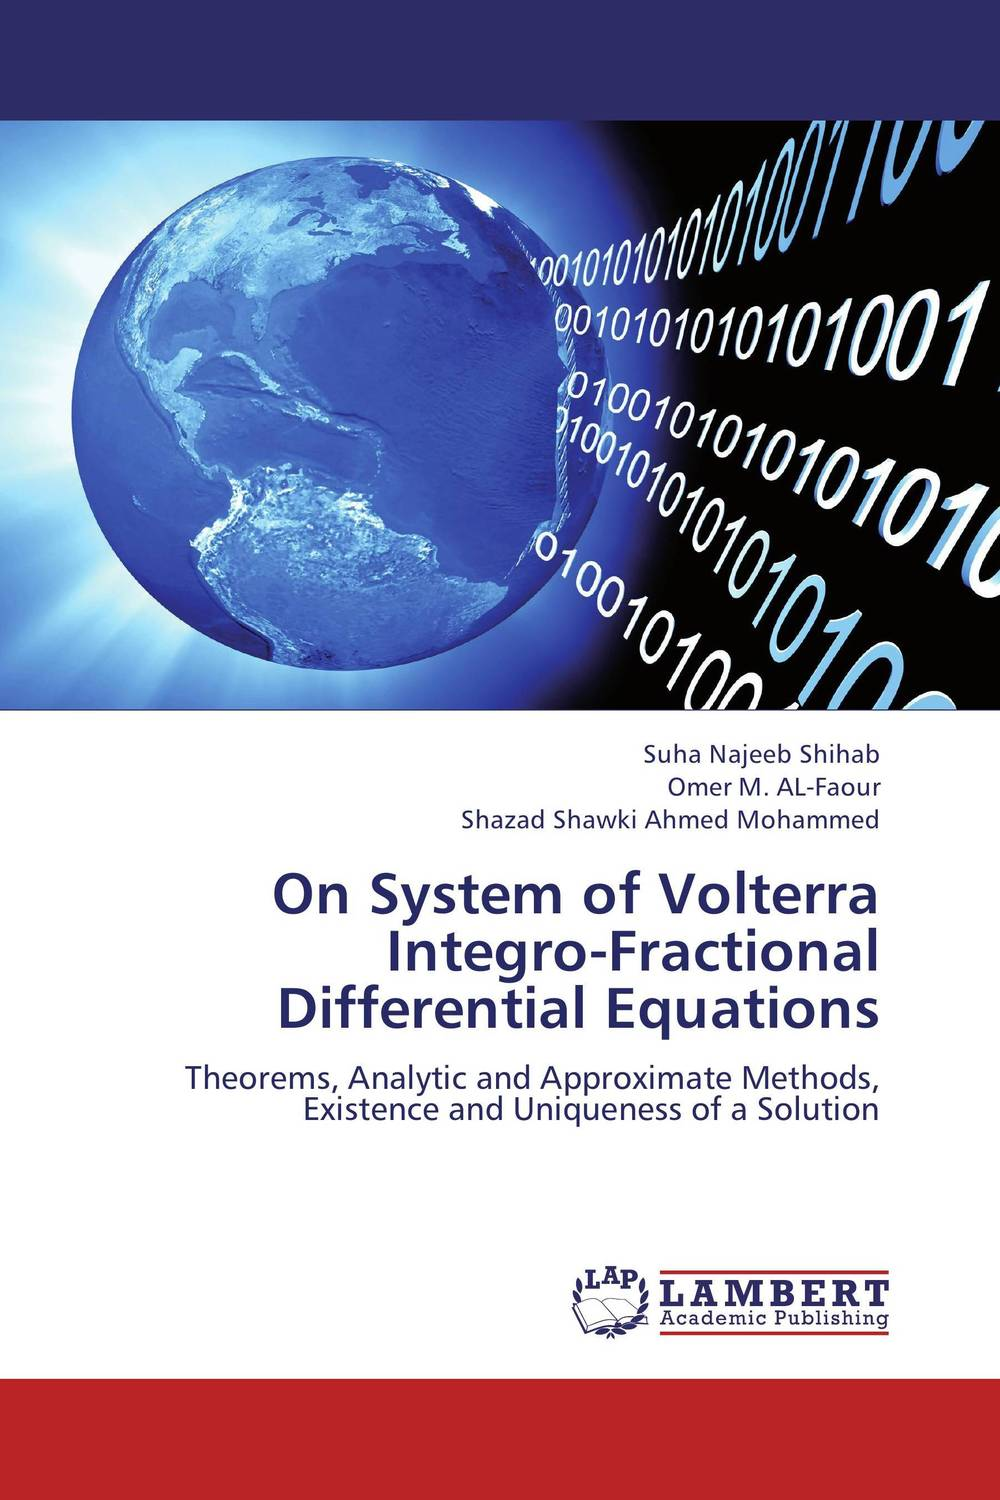 On System of Volterra Integro-Fractional Differential Equations rakesh kumar tiwari and rajendra prasad ojha conformation and stability of mixed dna triplex